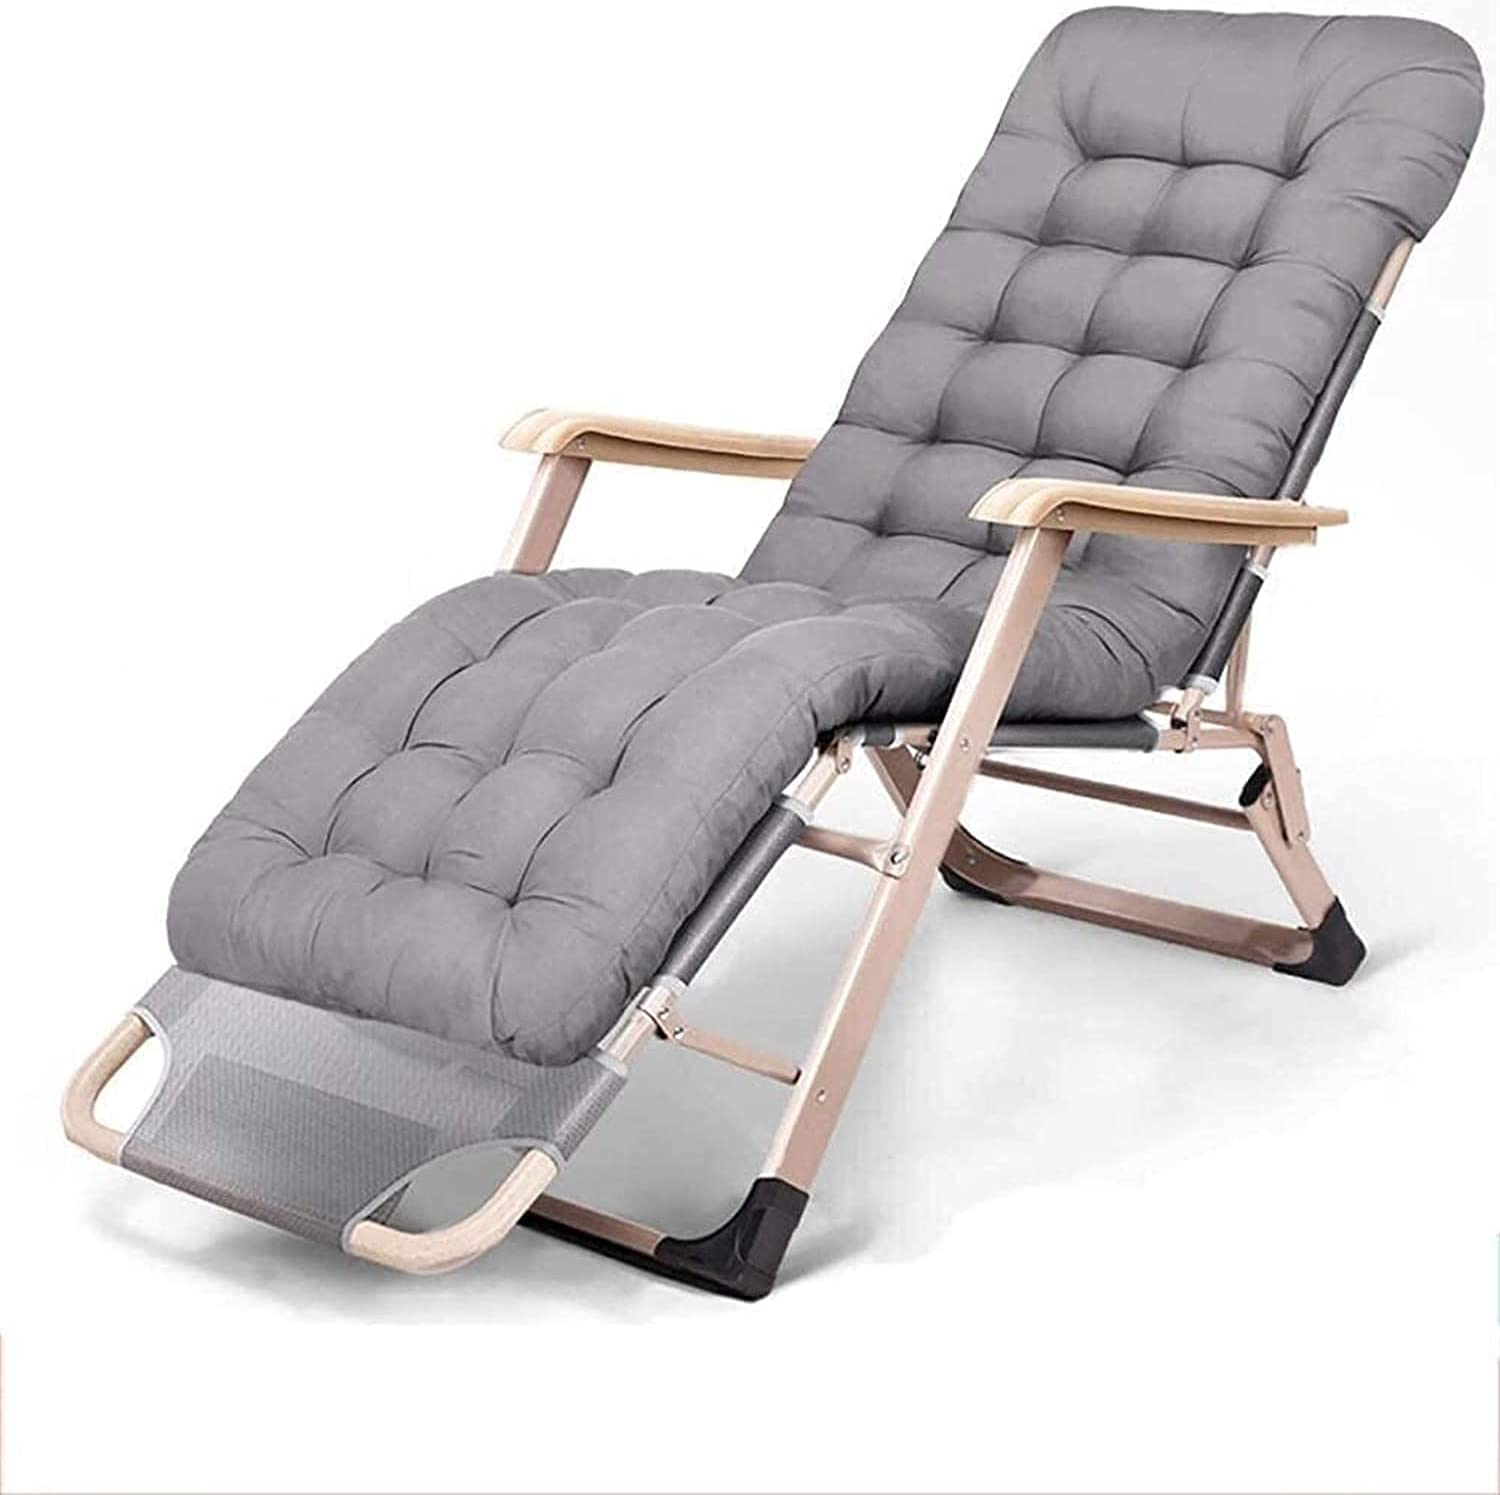 Patio Lounger Chair New products, world's highest quality popular! Zero Gravity Cha Recliner Max 89% OFF